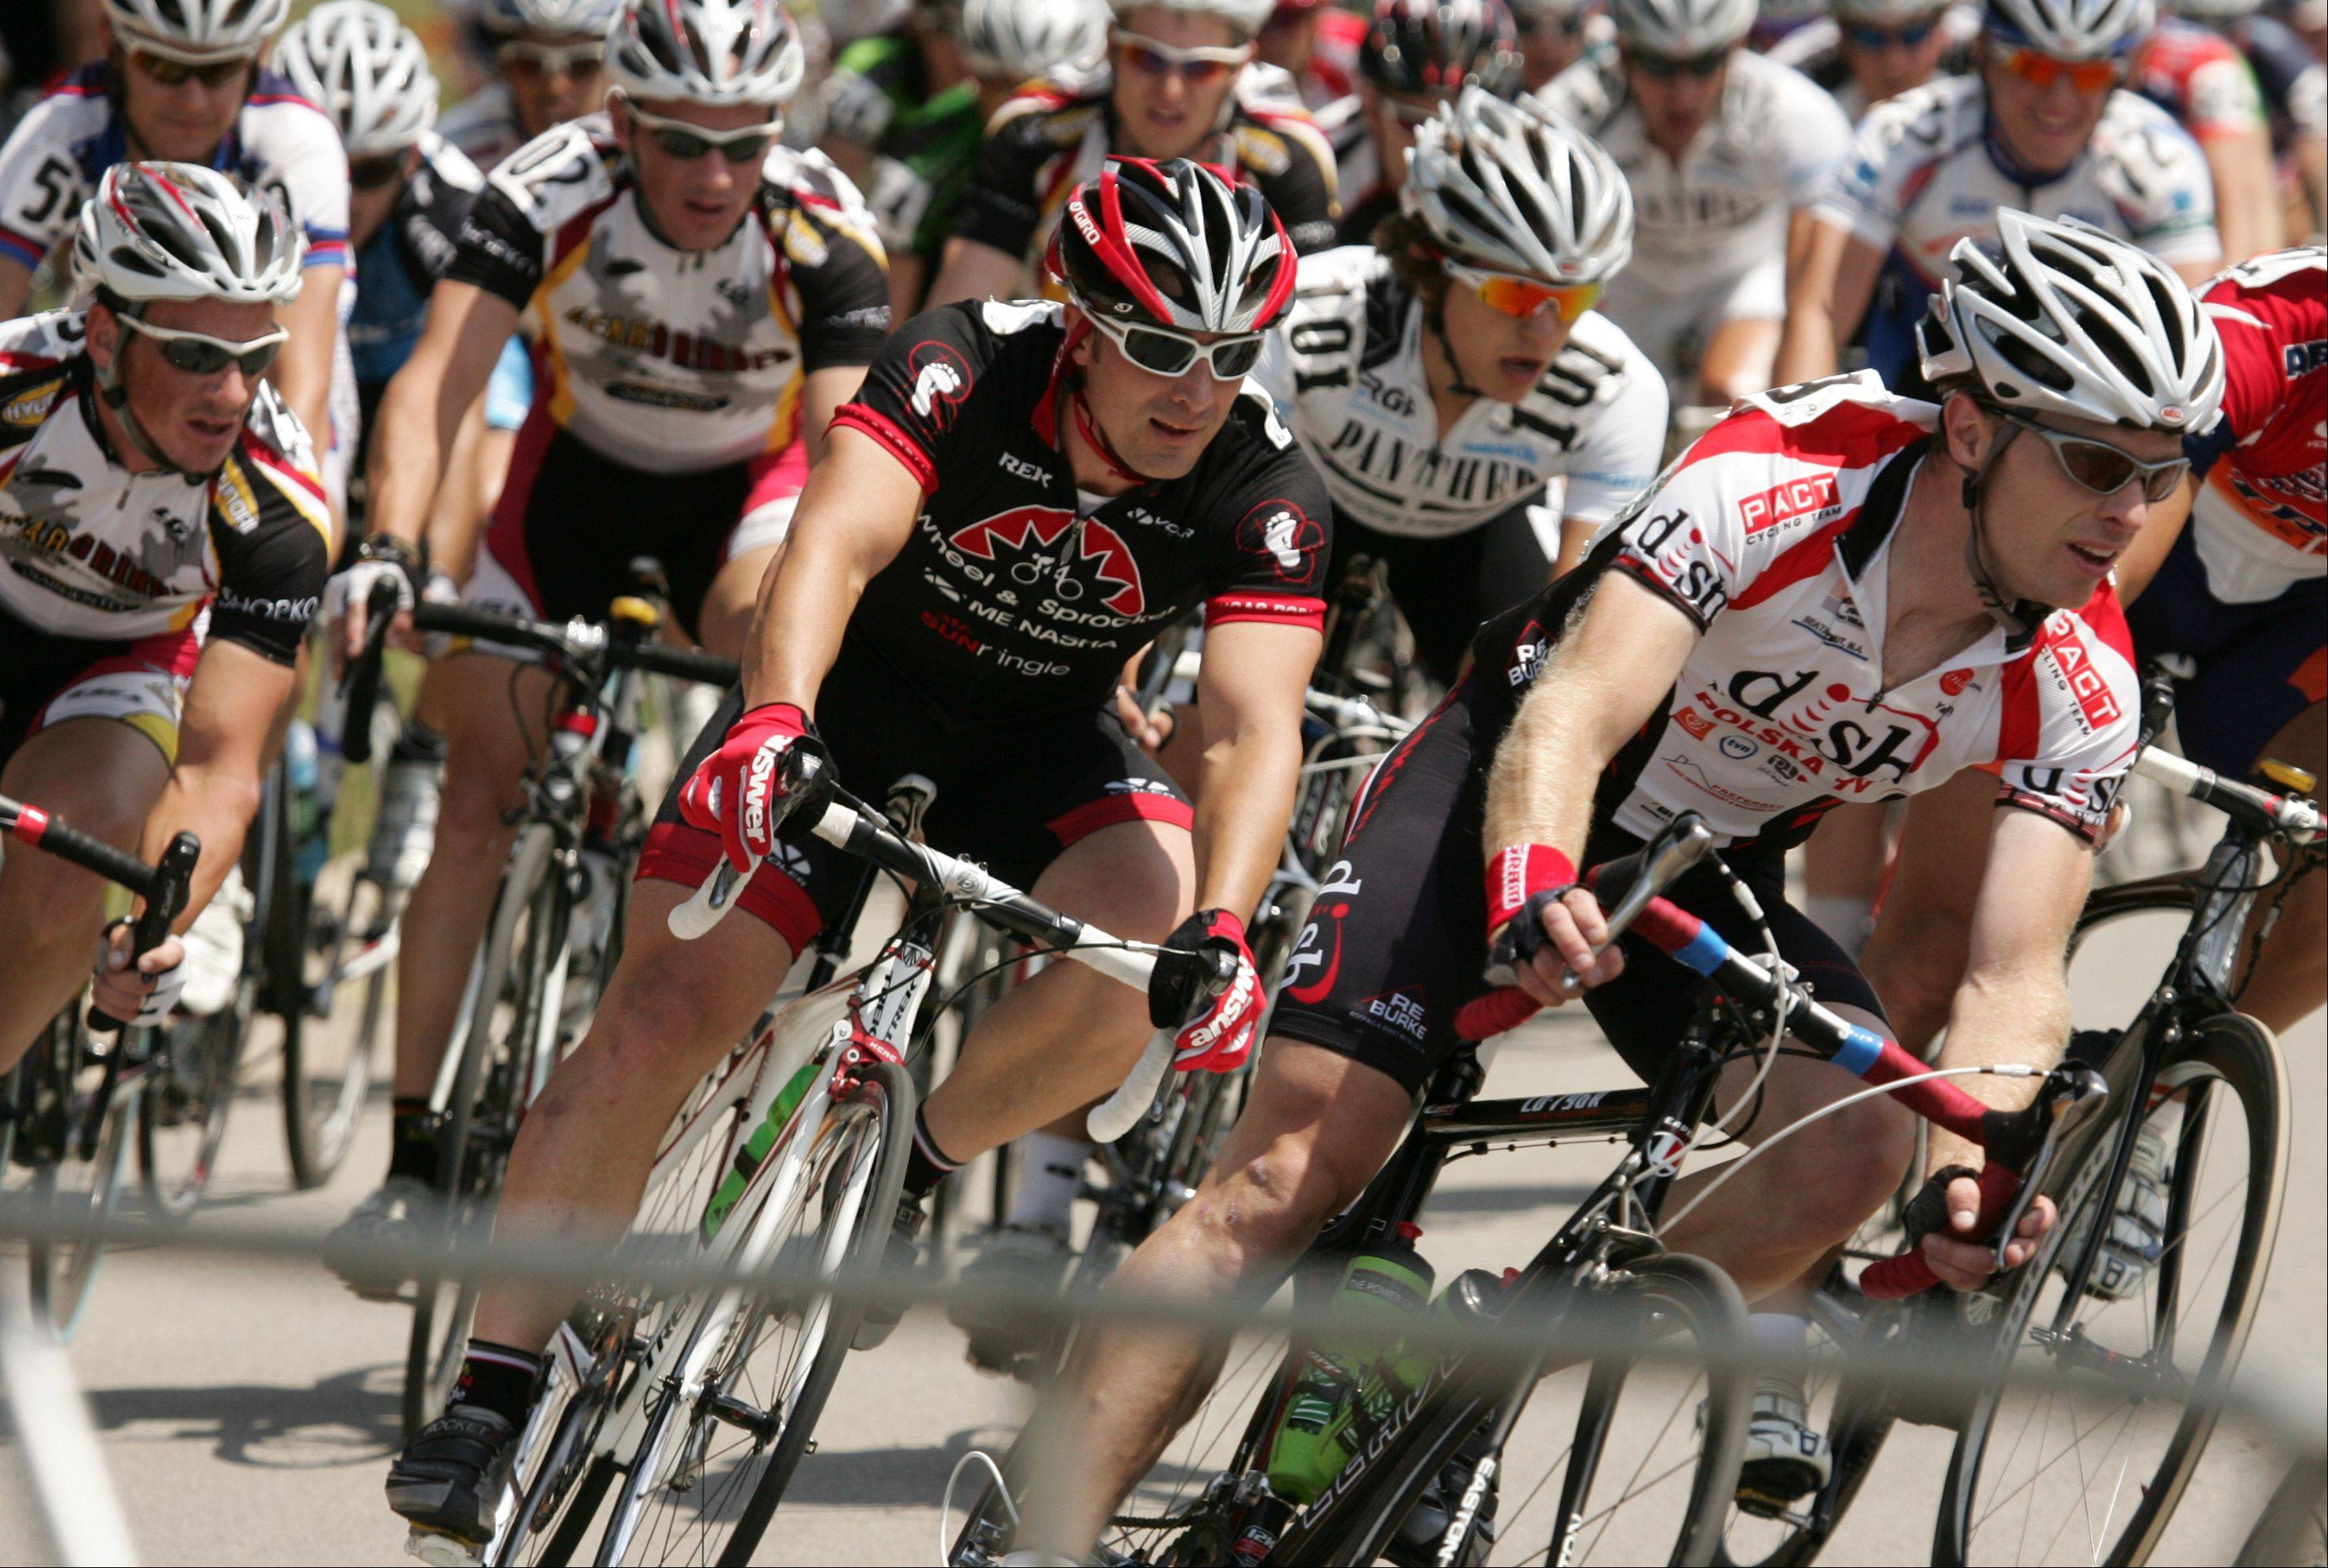 Wauconda's roads, lake appeal to bike race organizers